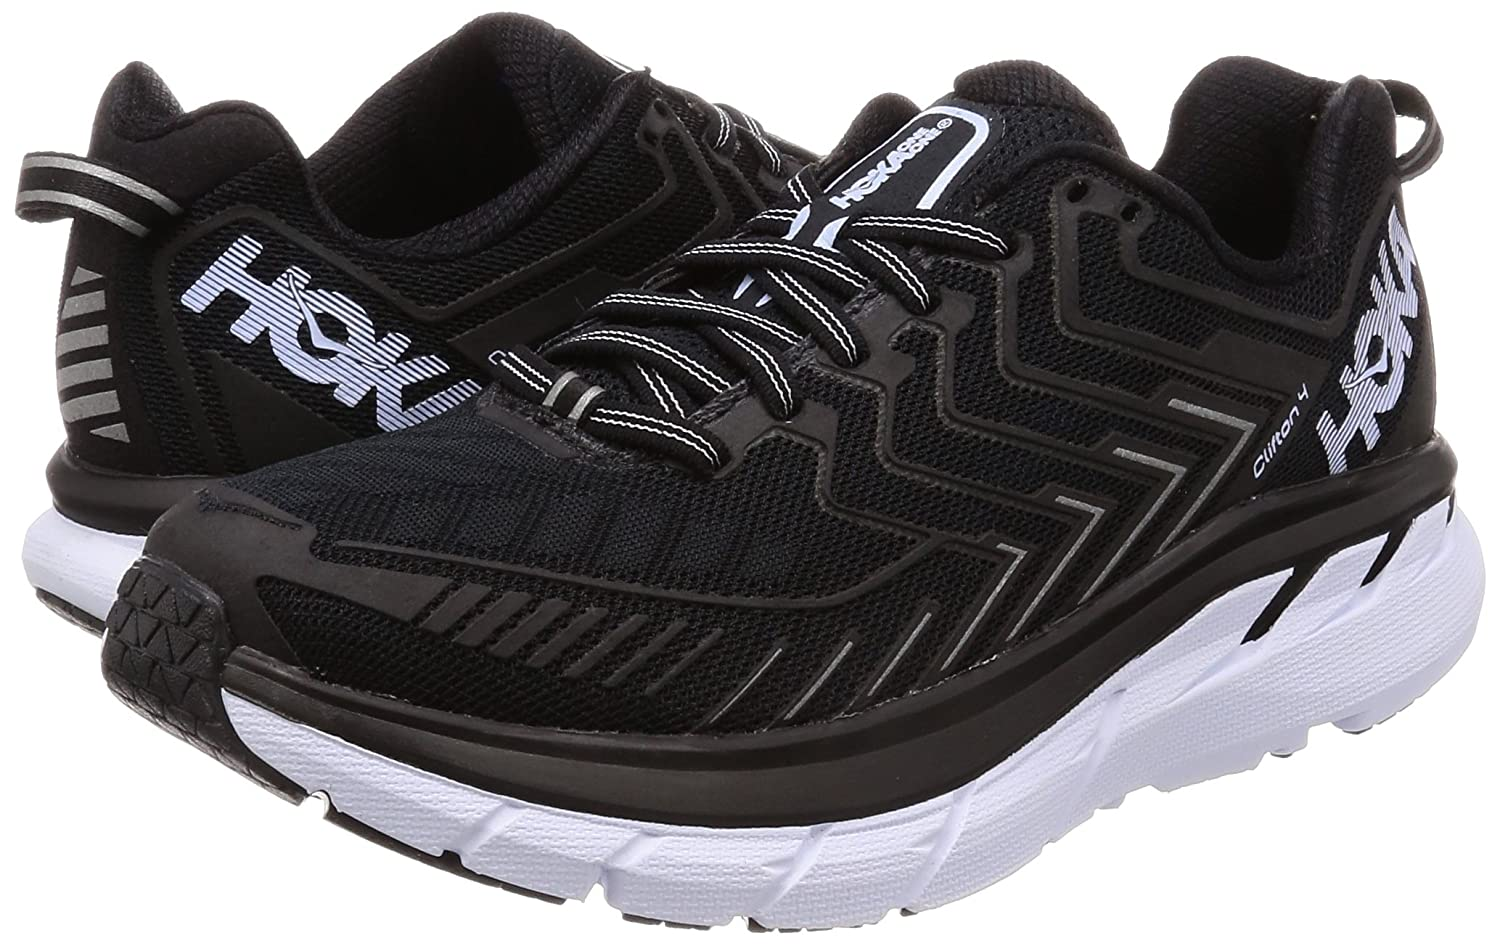 HOKA ONE Running ONE Women's Clifton 4 Running ONE Shoe B01MY0GE3D 5 B(M) US|Black/White 7228cc